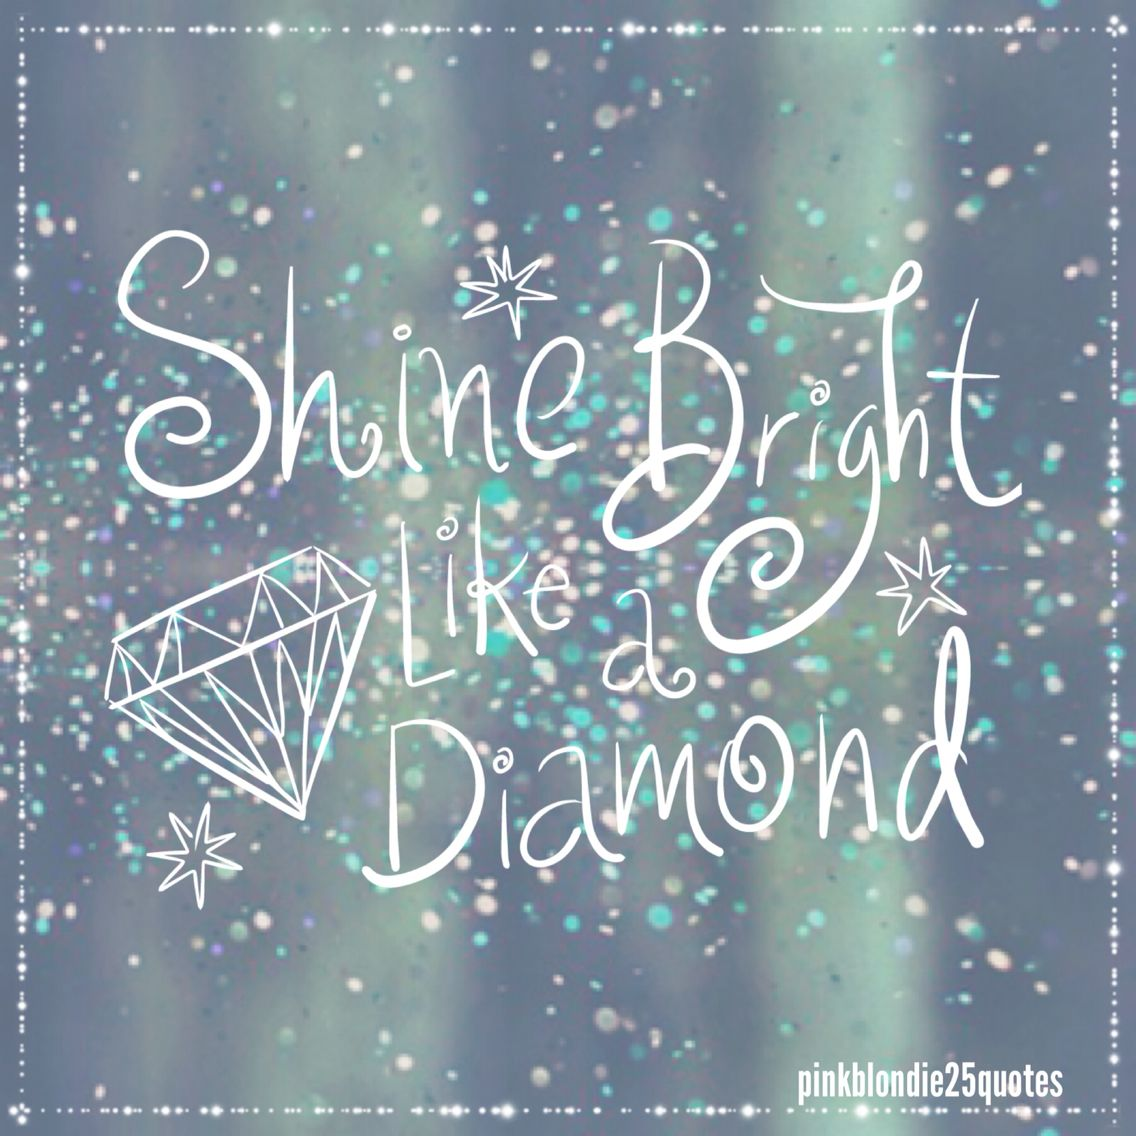 Shine bright like a diamond #shine #diamond #quotes #wallpaper #backgrounds #pinkblondie25quotes #sky